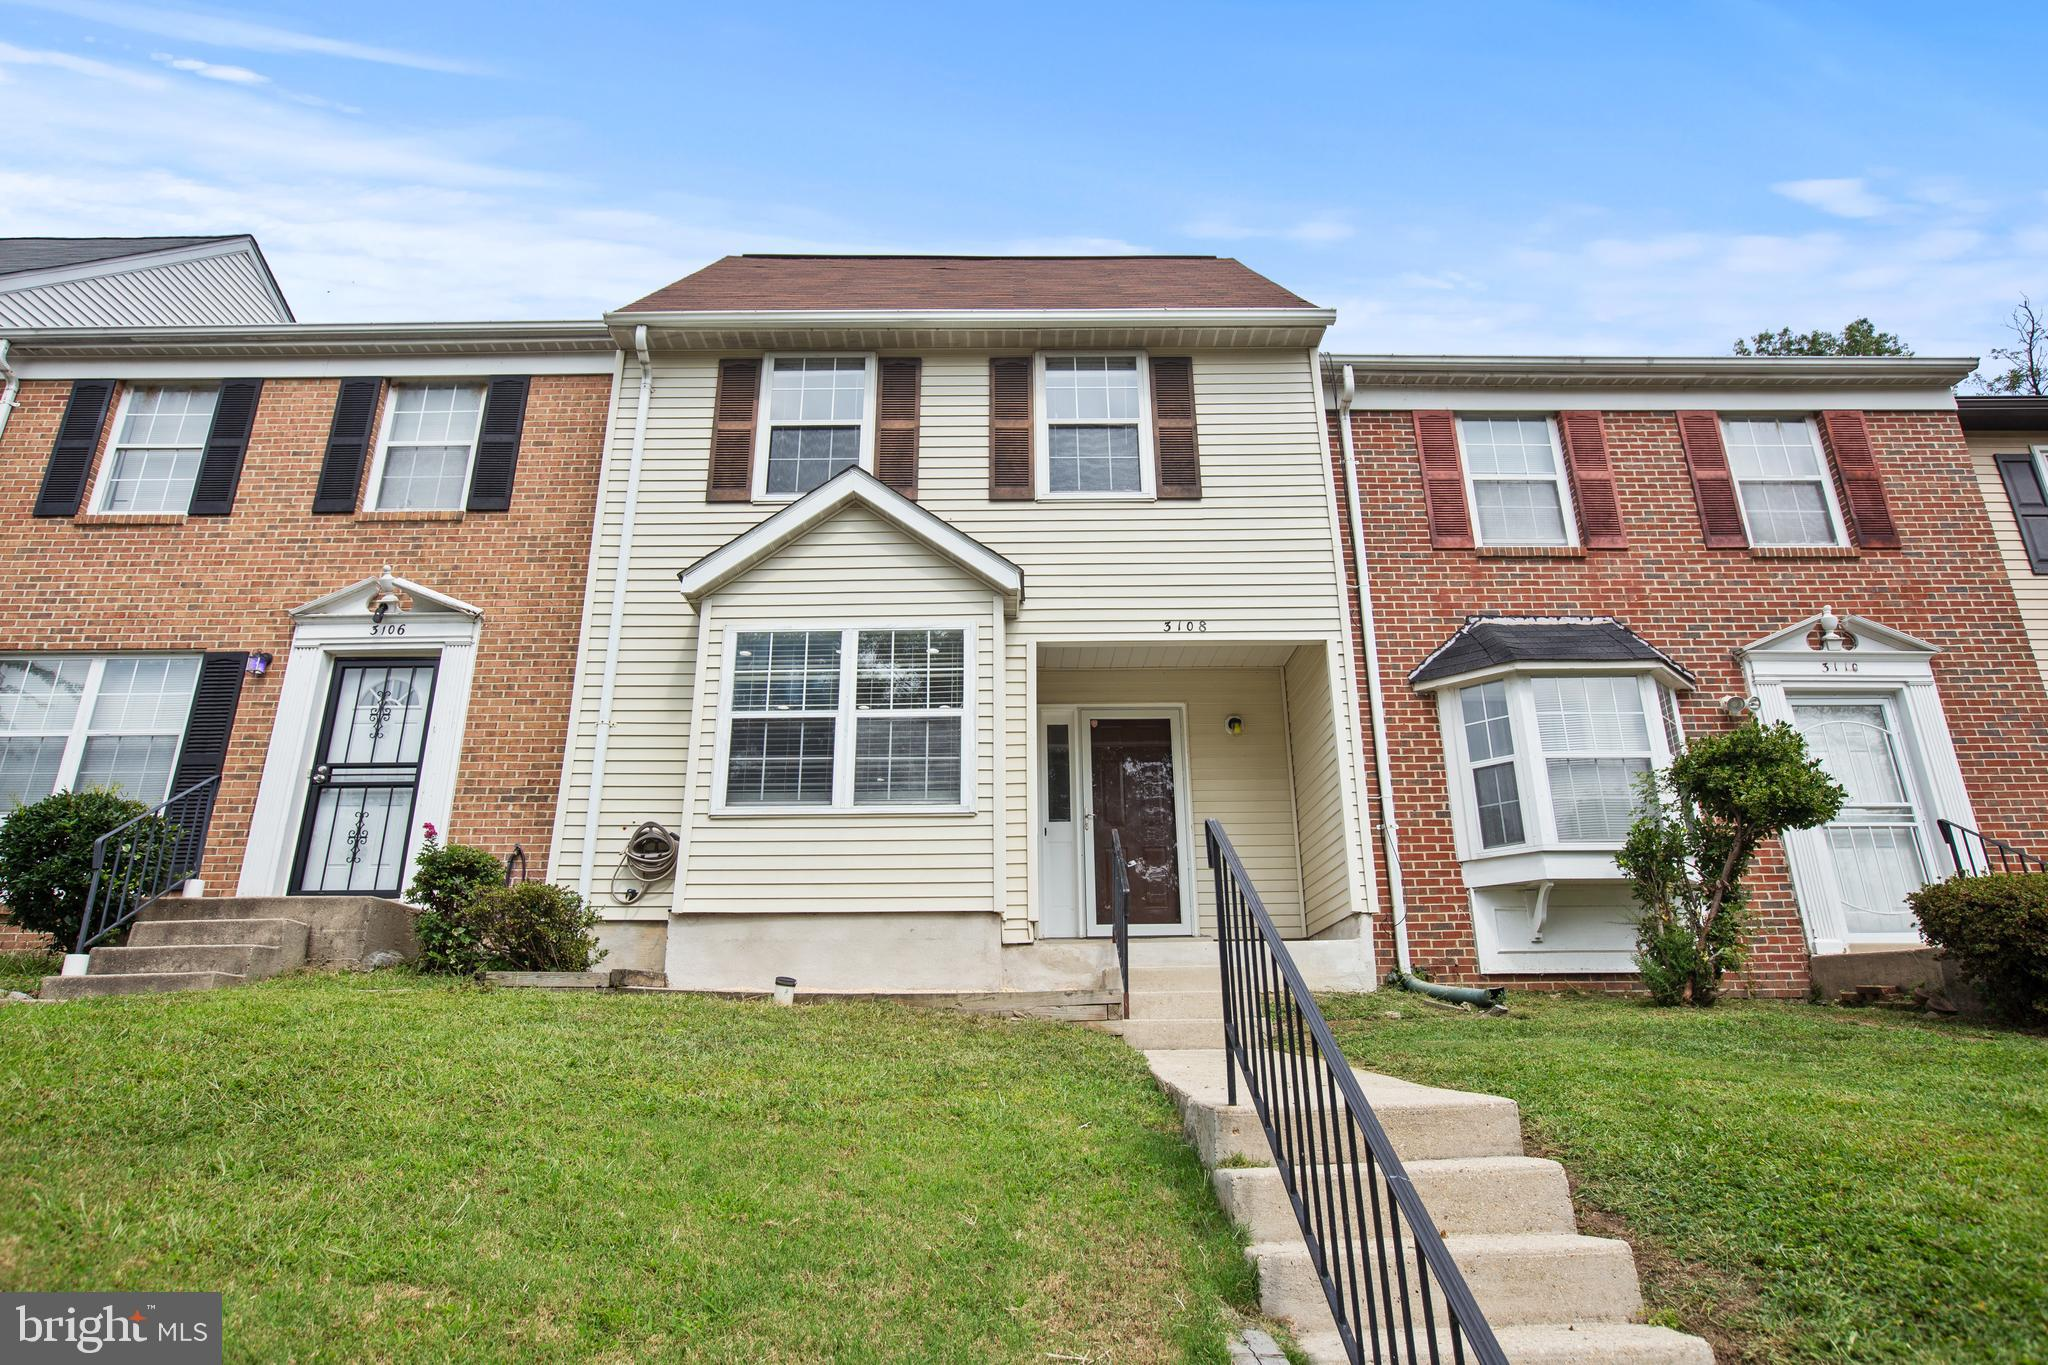 Beautifully updated two level townhouse waiting for you to call it home. All new stainless steel app